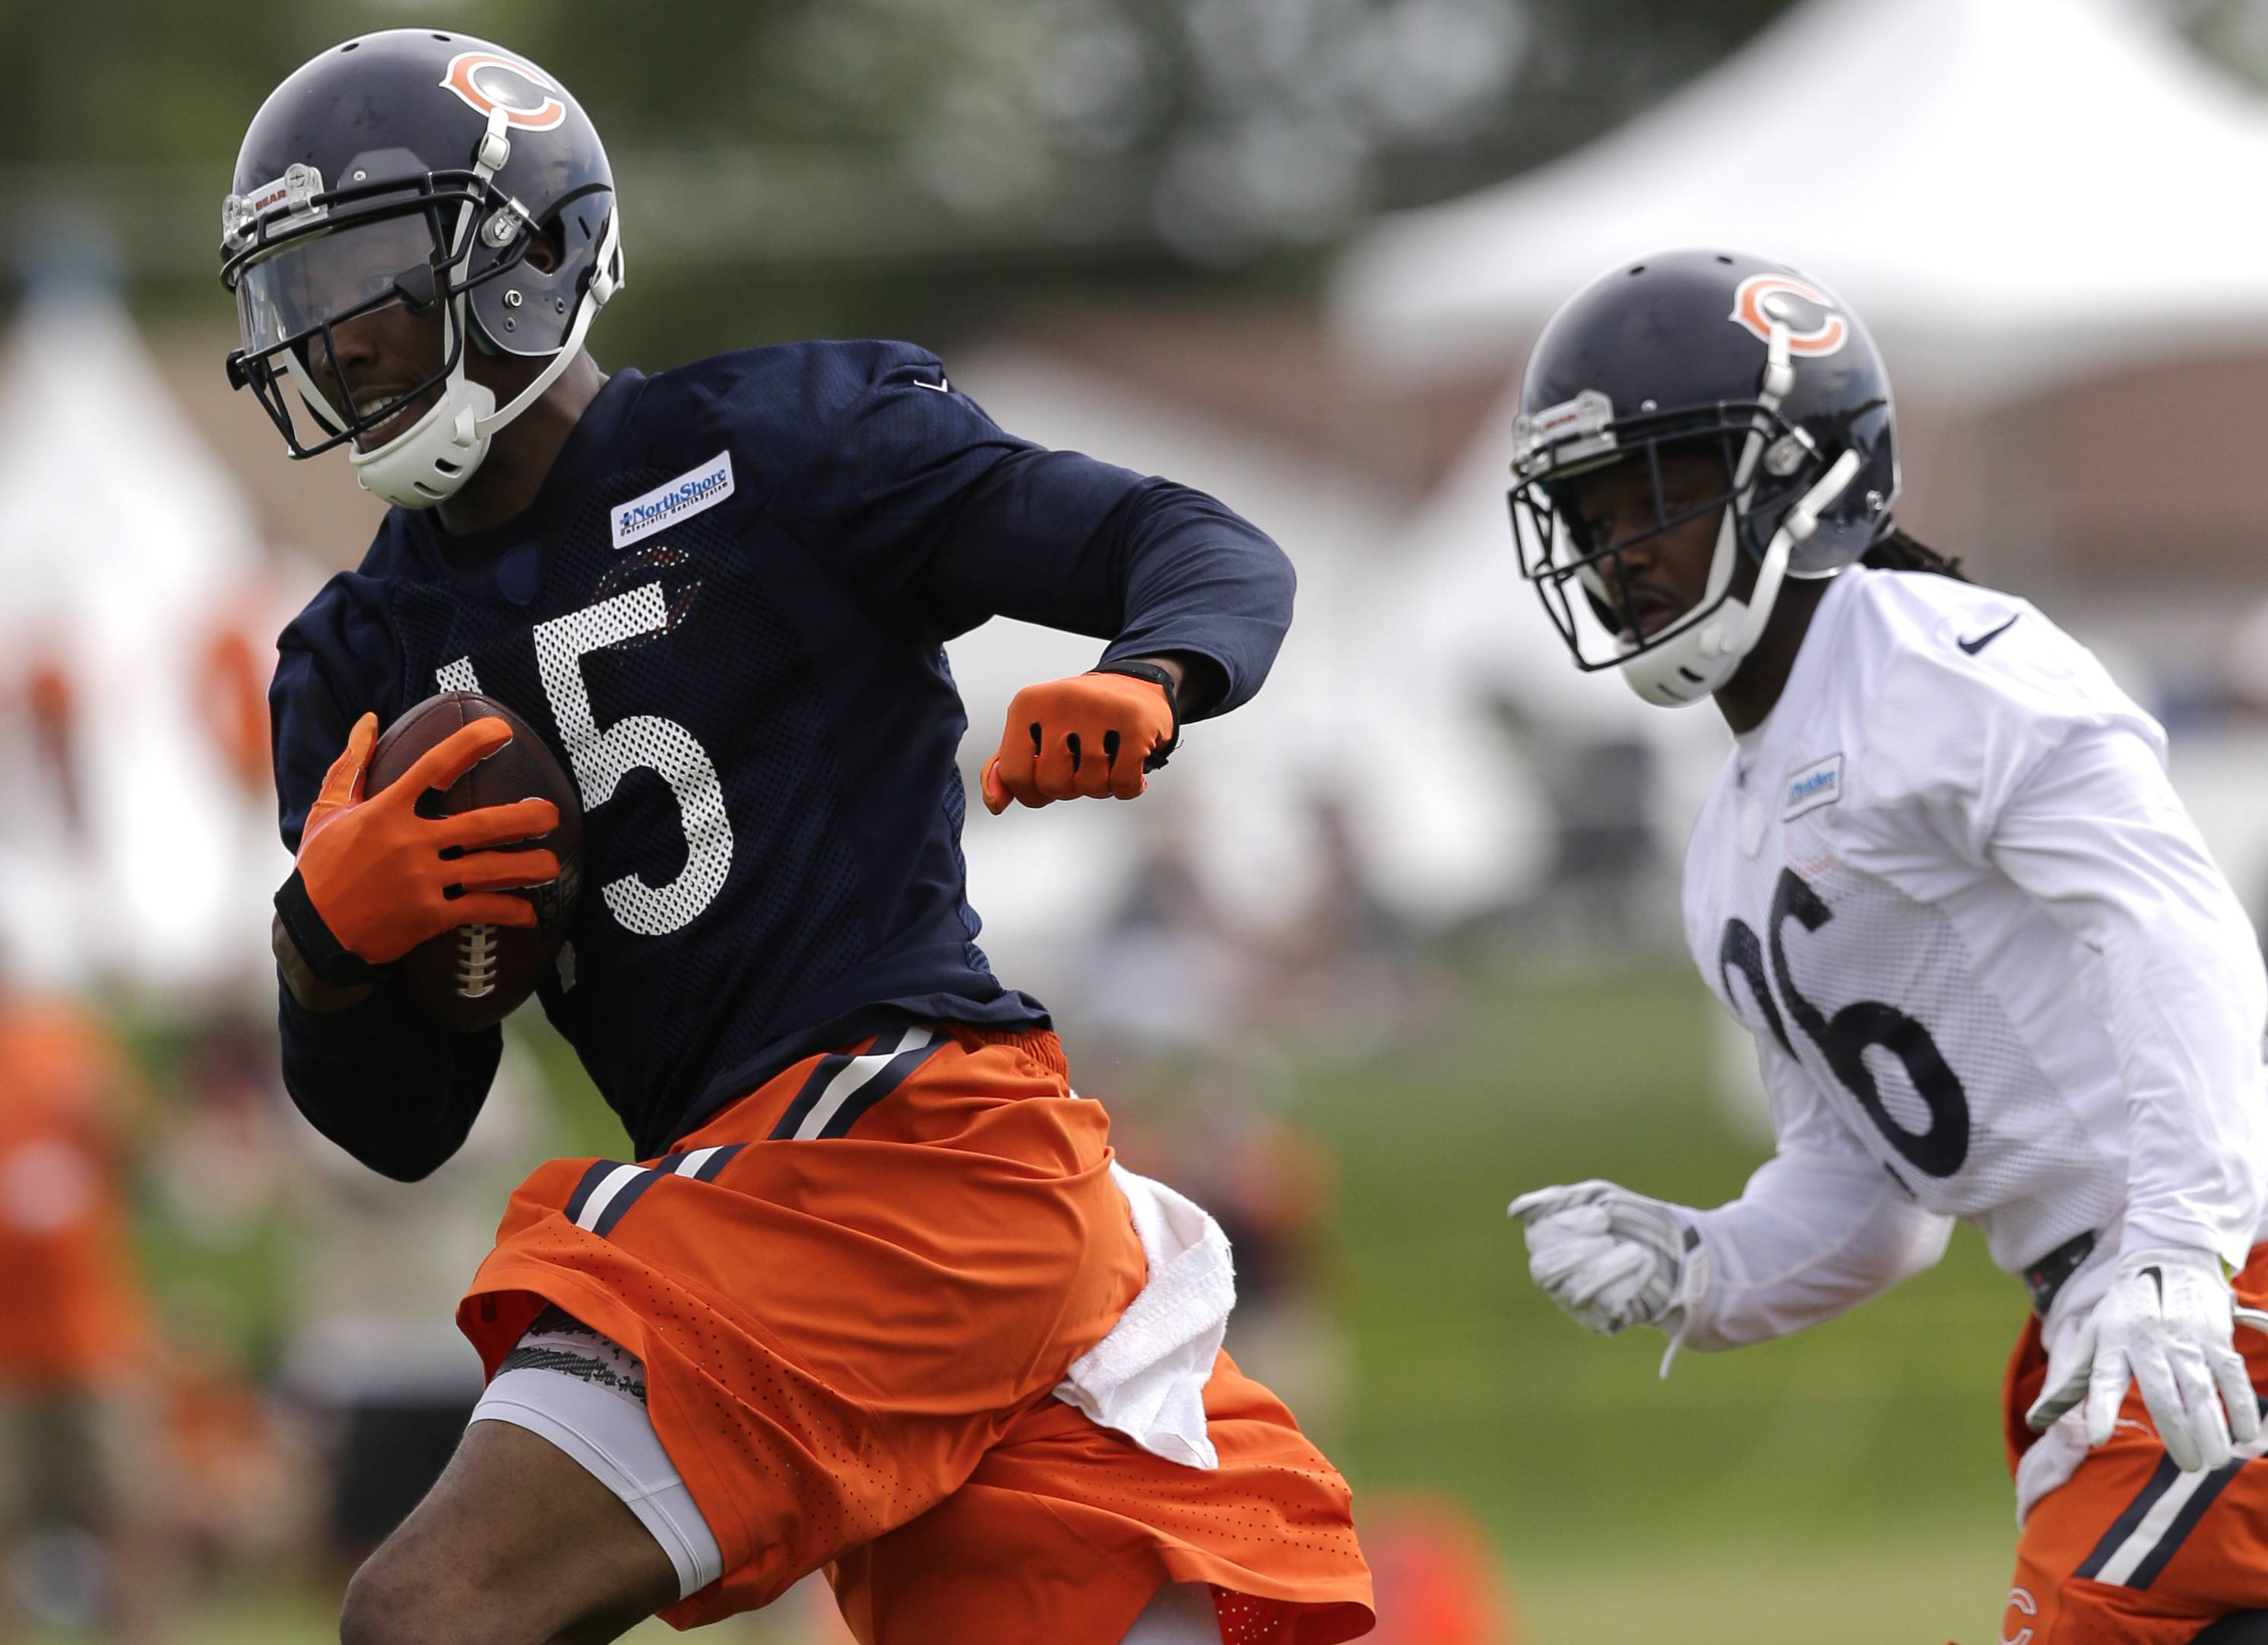 Bears wide receiver Brandon Marshall runs past cornerback Tim Jennings during a training-camp workout.